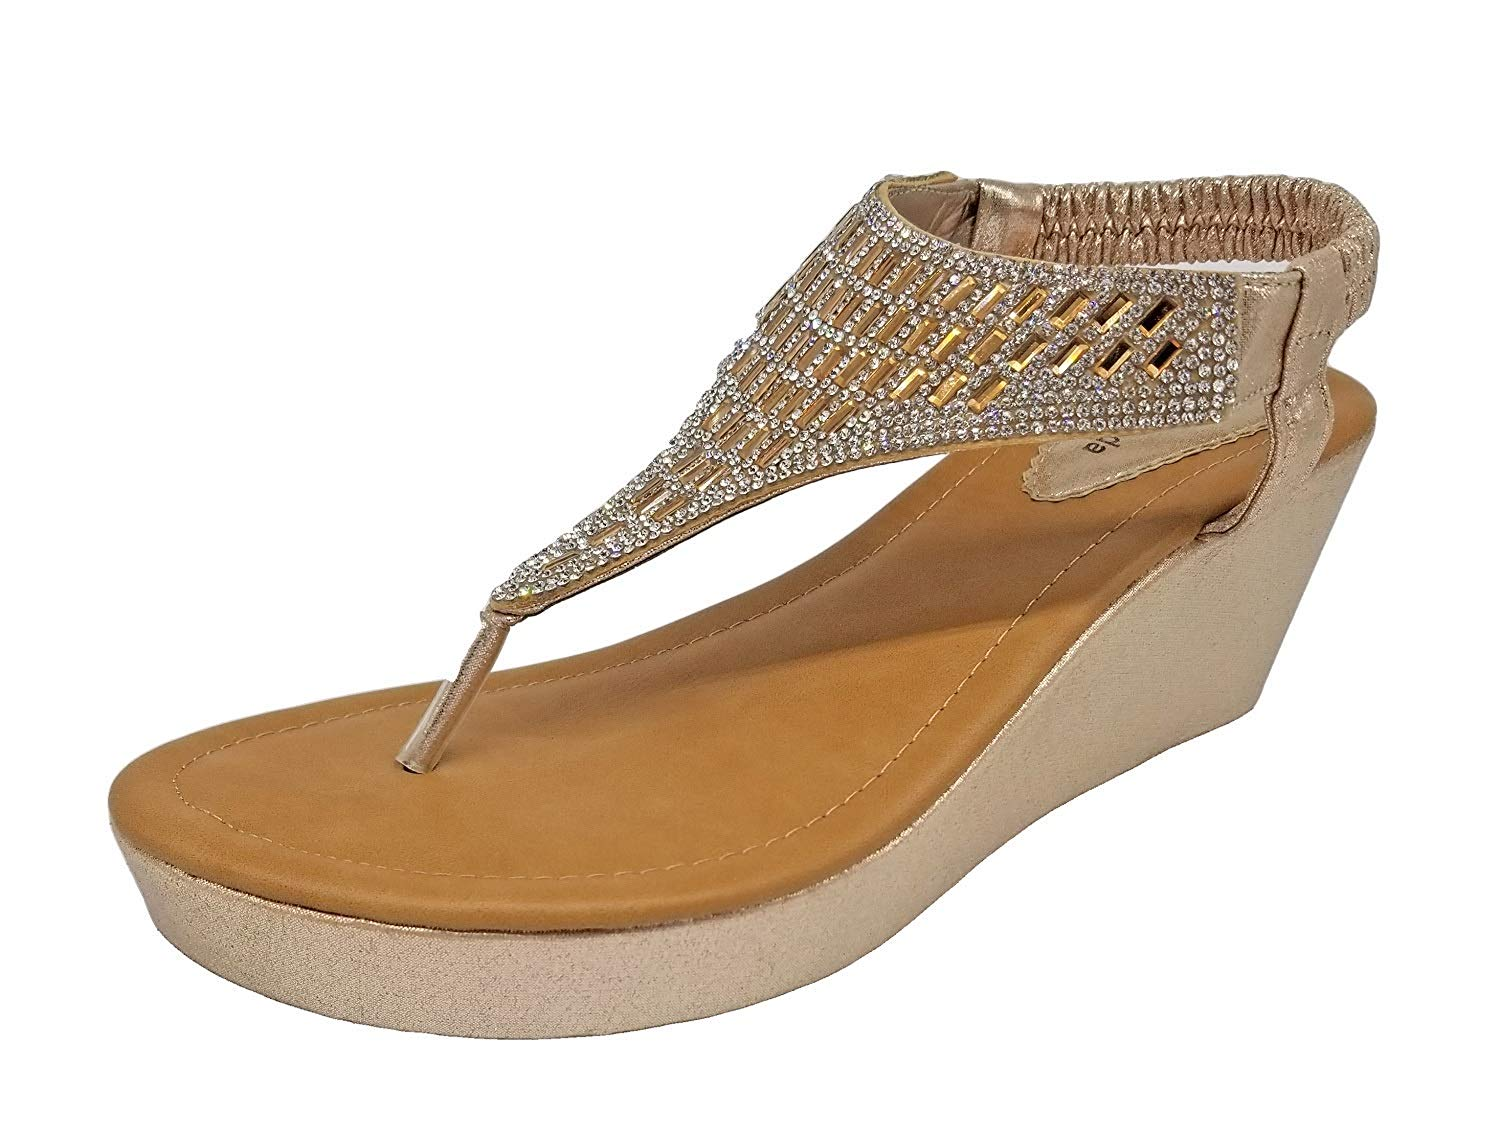 5a52db72b10 Get Quotations · Top Moda OR-26 Women s Wedge Sandals